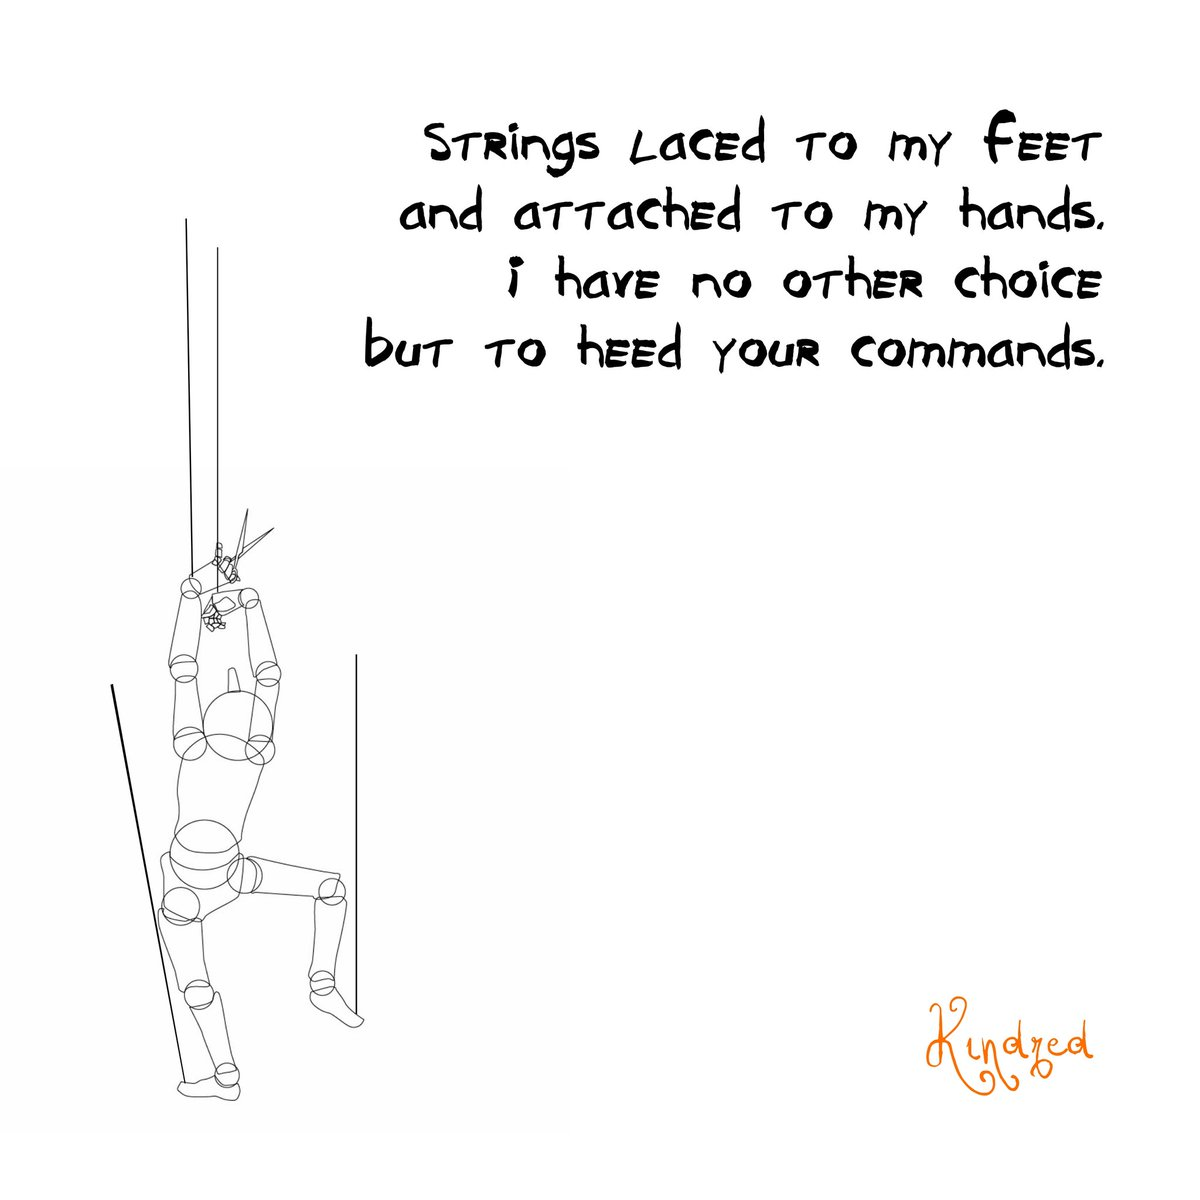 Strings laced to my feet and attached to my hands. I have no other choice but to heed your commands.  © Kindred 2020.  #loveforpoetry #poetrybyme #wordplay #rhymingpoetry #originalpoetry #vibes #writerstag #artofpoets #lovequotes #lovers #loveher #forher #rhymes #memes #meme https://t.co/Isrpn8hqui